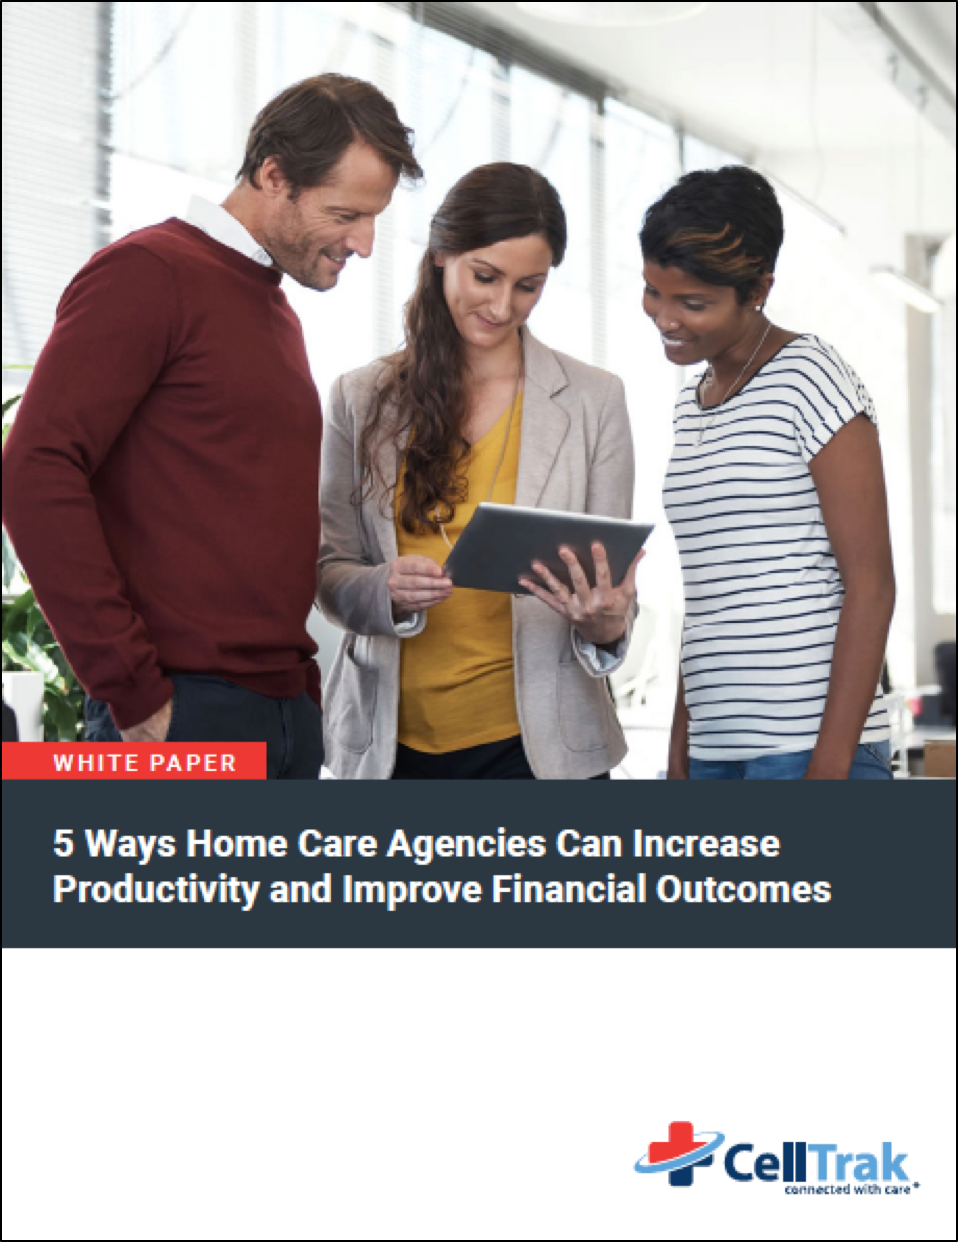 Download your white paper to learn about 5 ways for home care agencies to increase productivity and improve financial outcomes